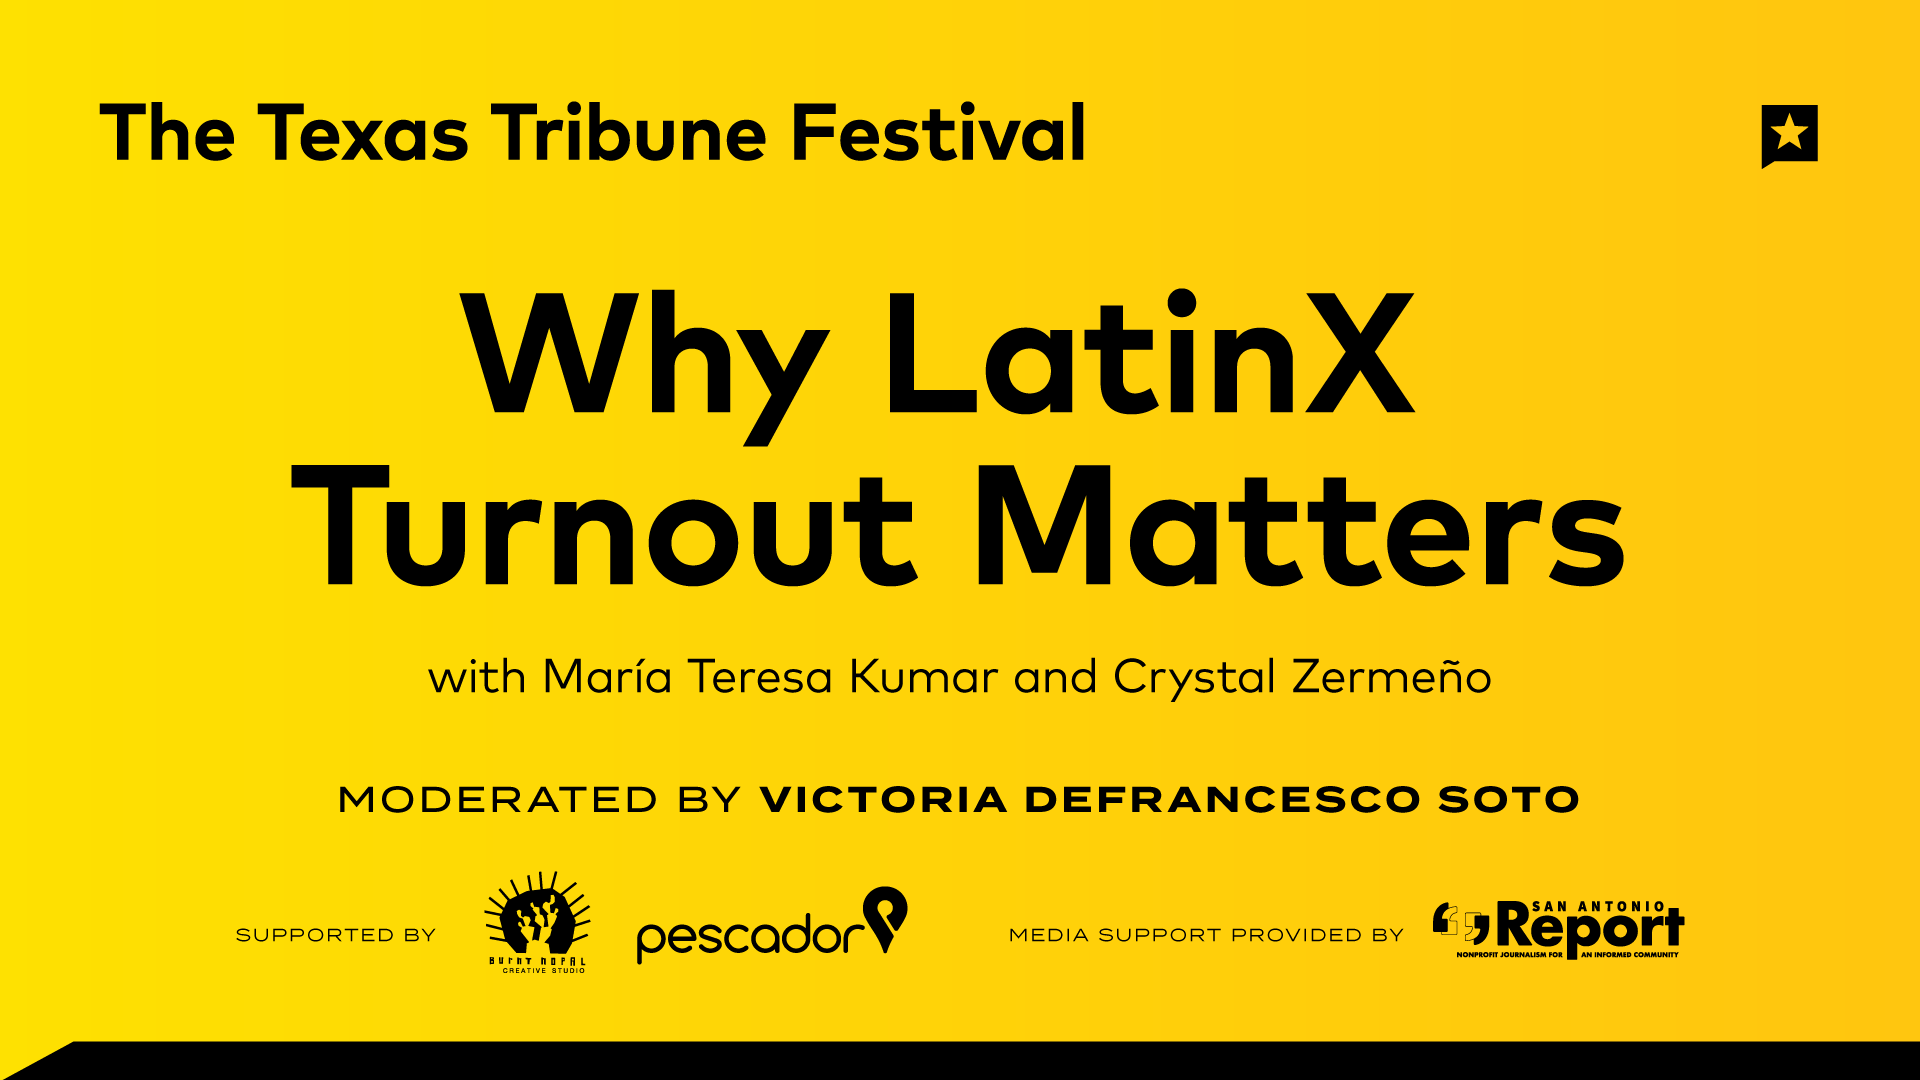 Why LatinX Turnout Matters